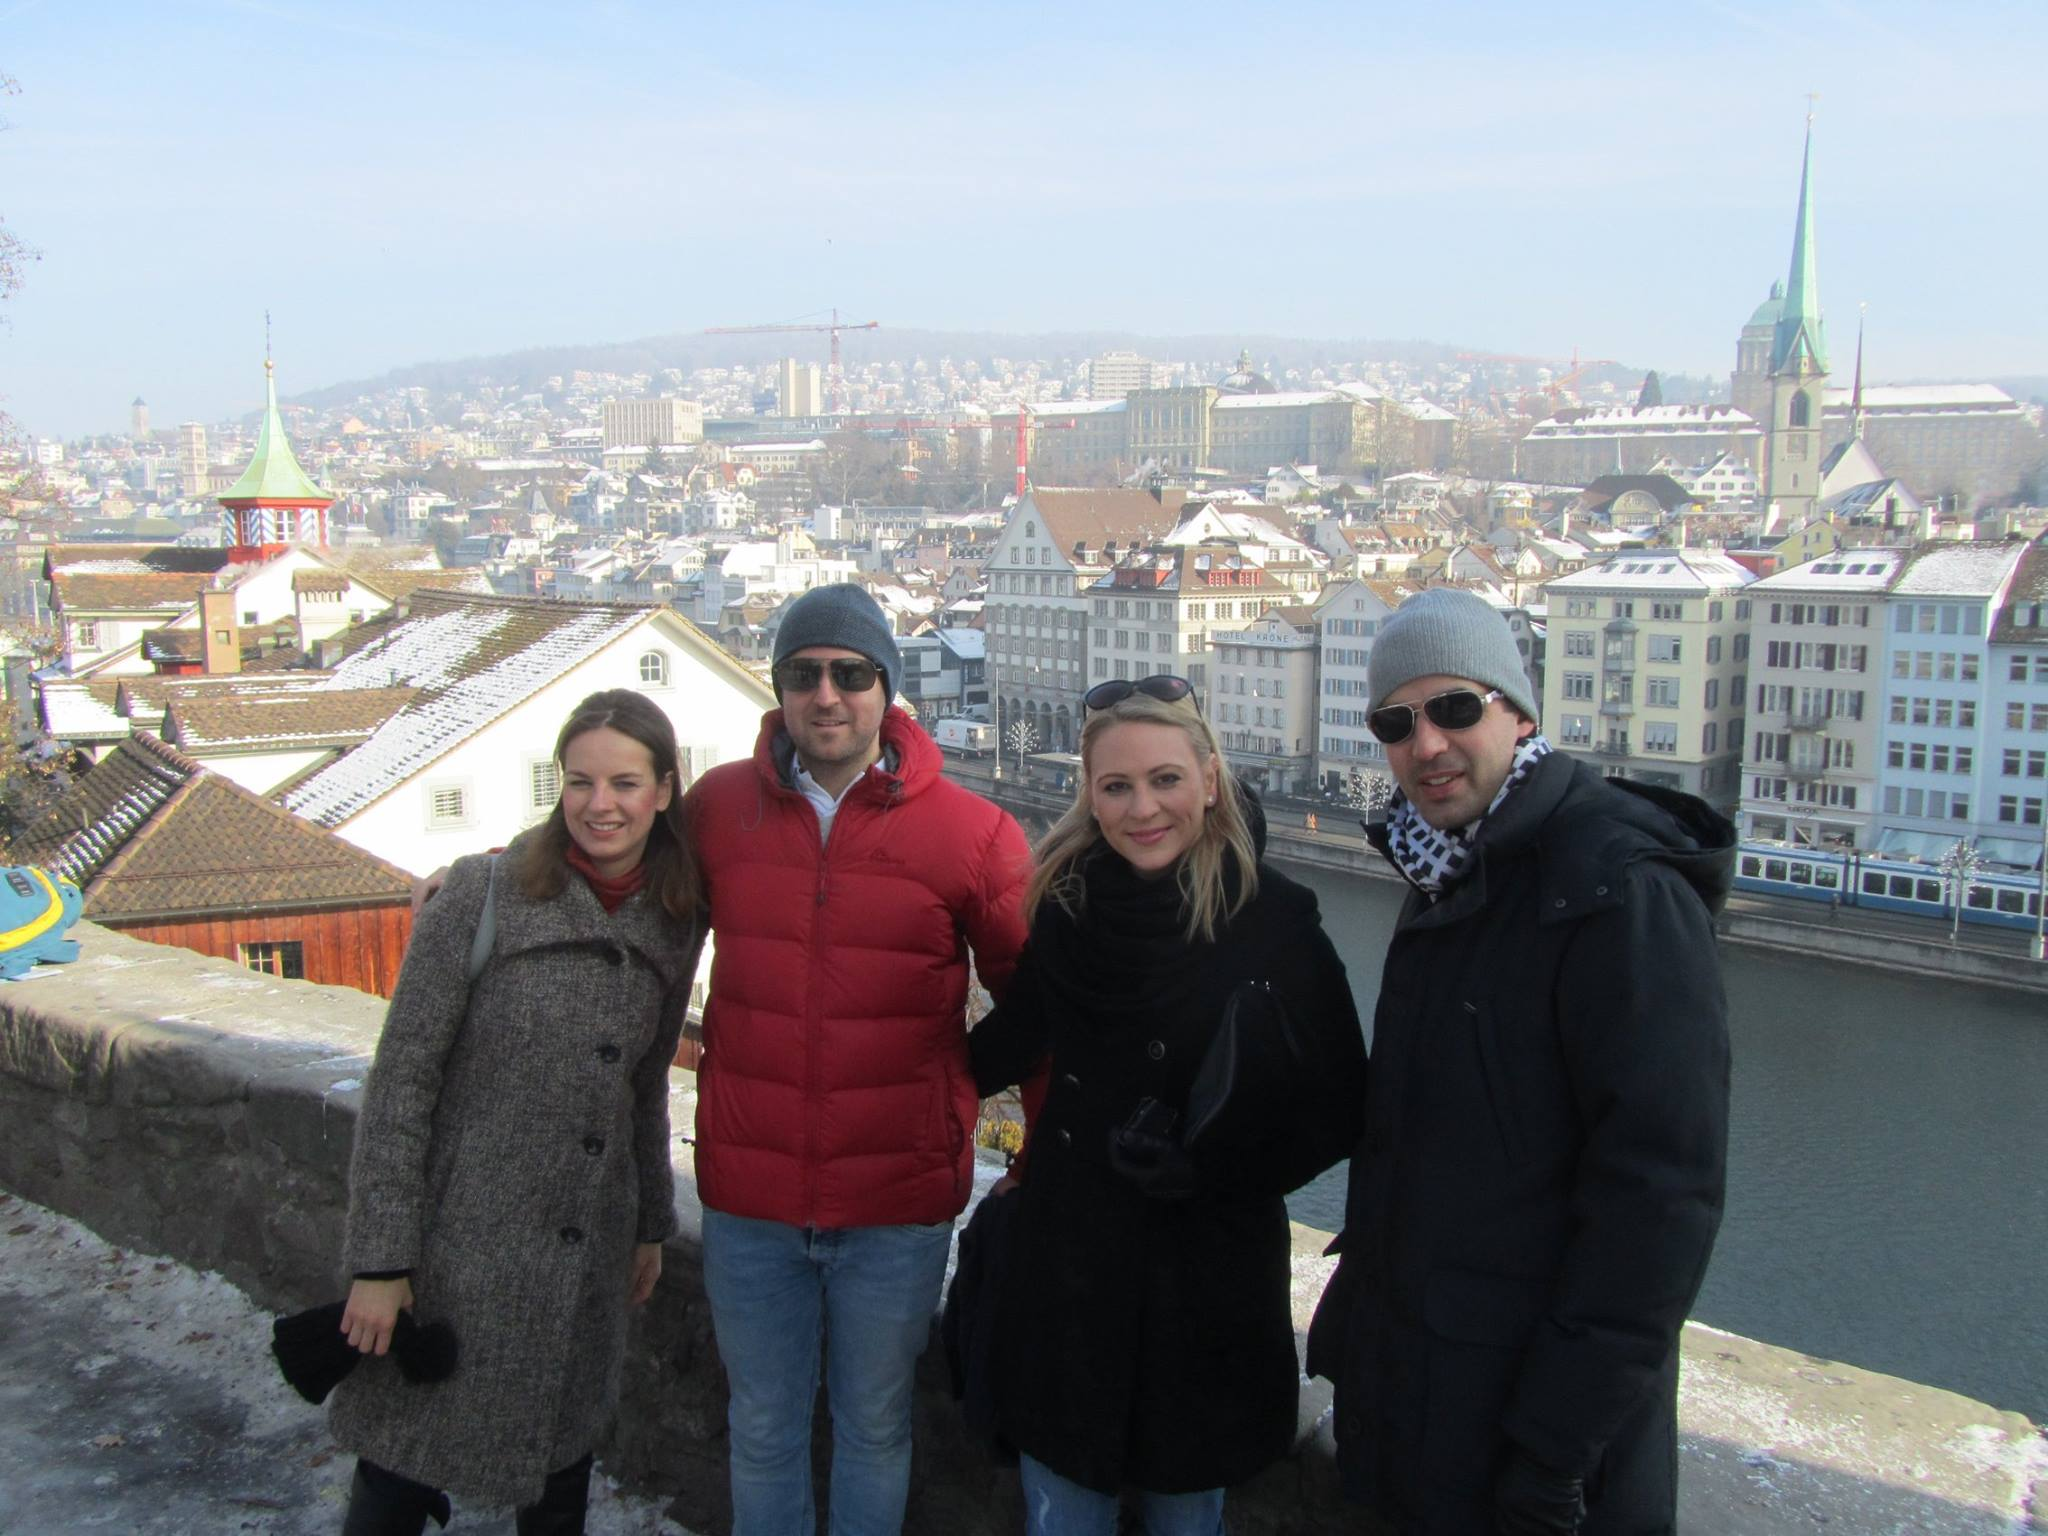 My guests from Bratislava